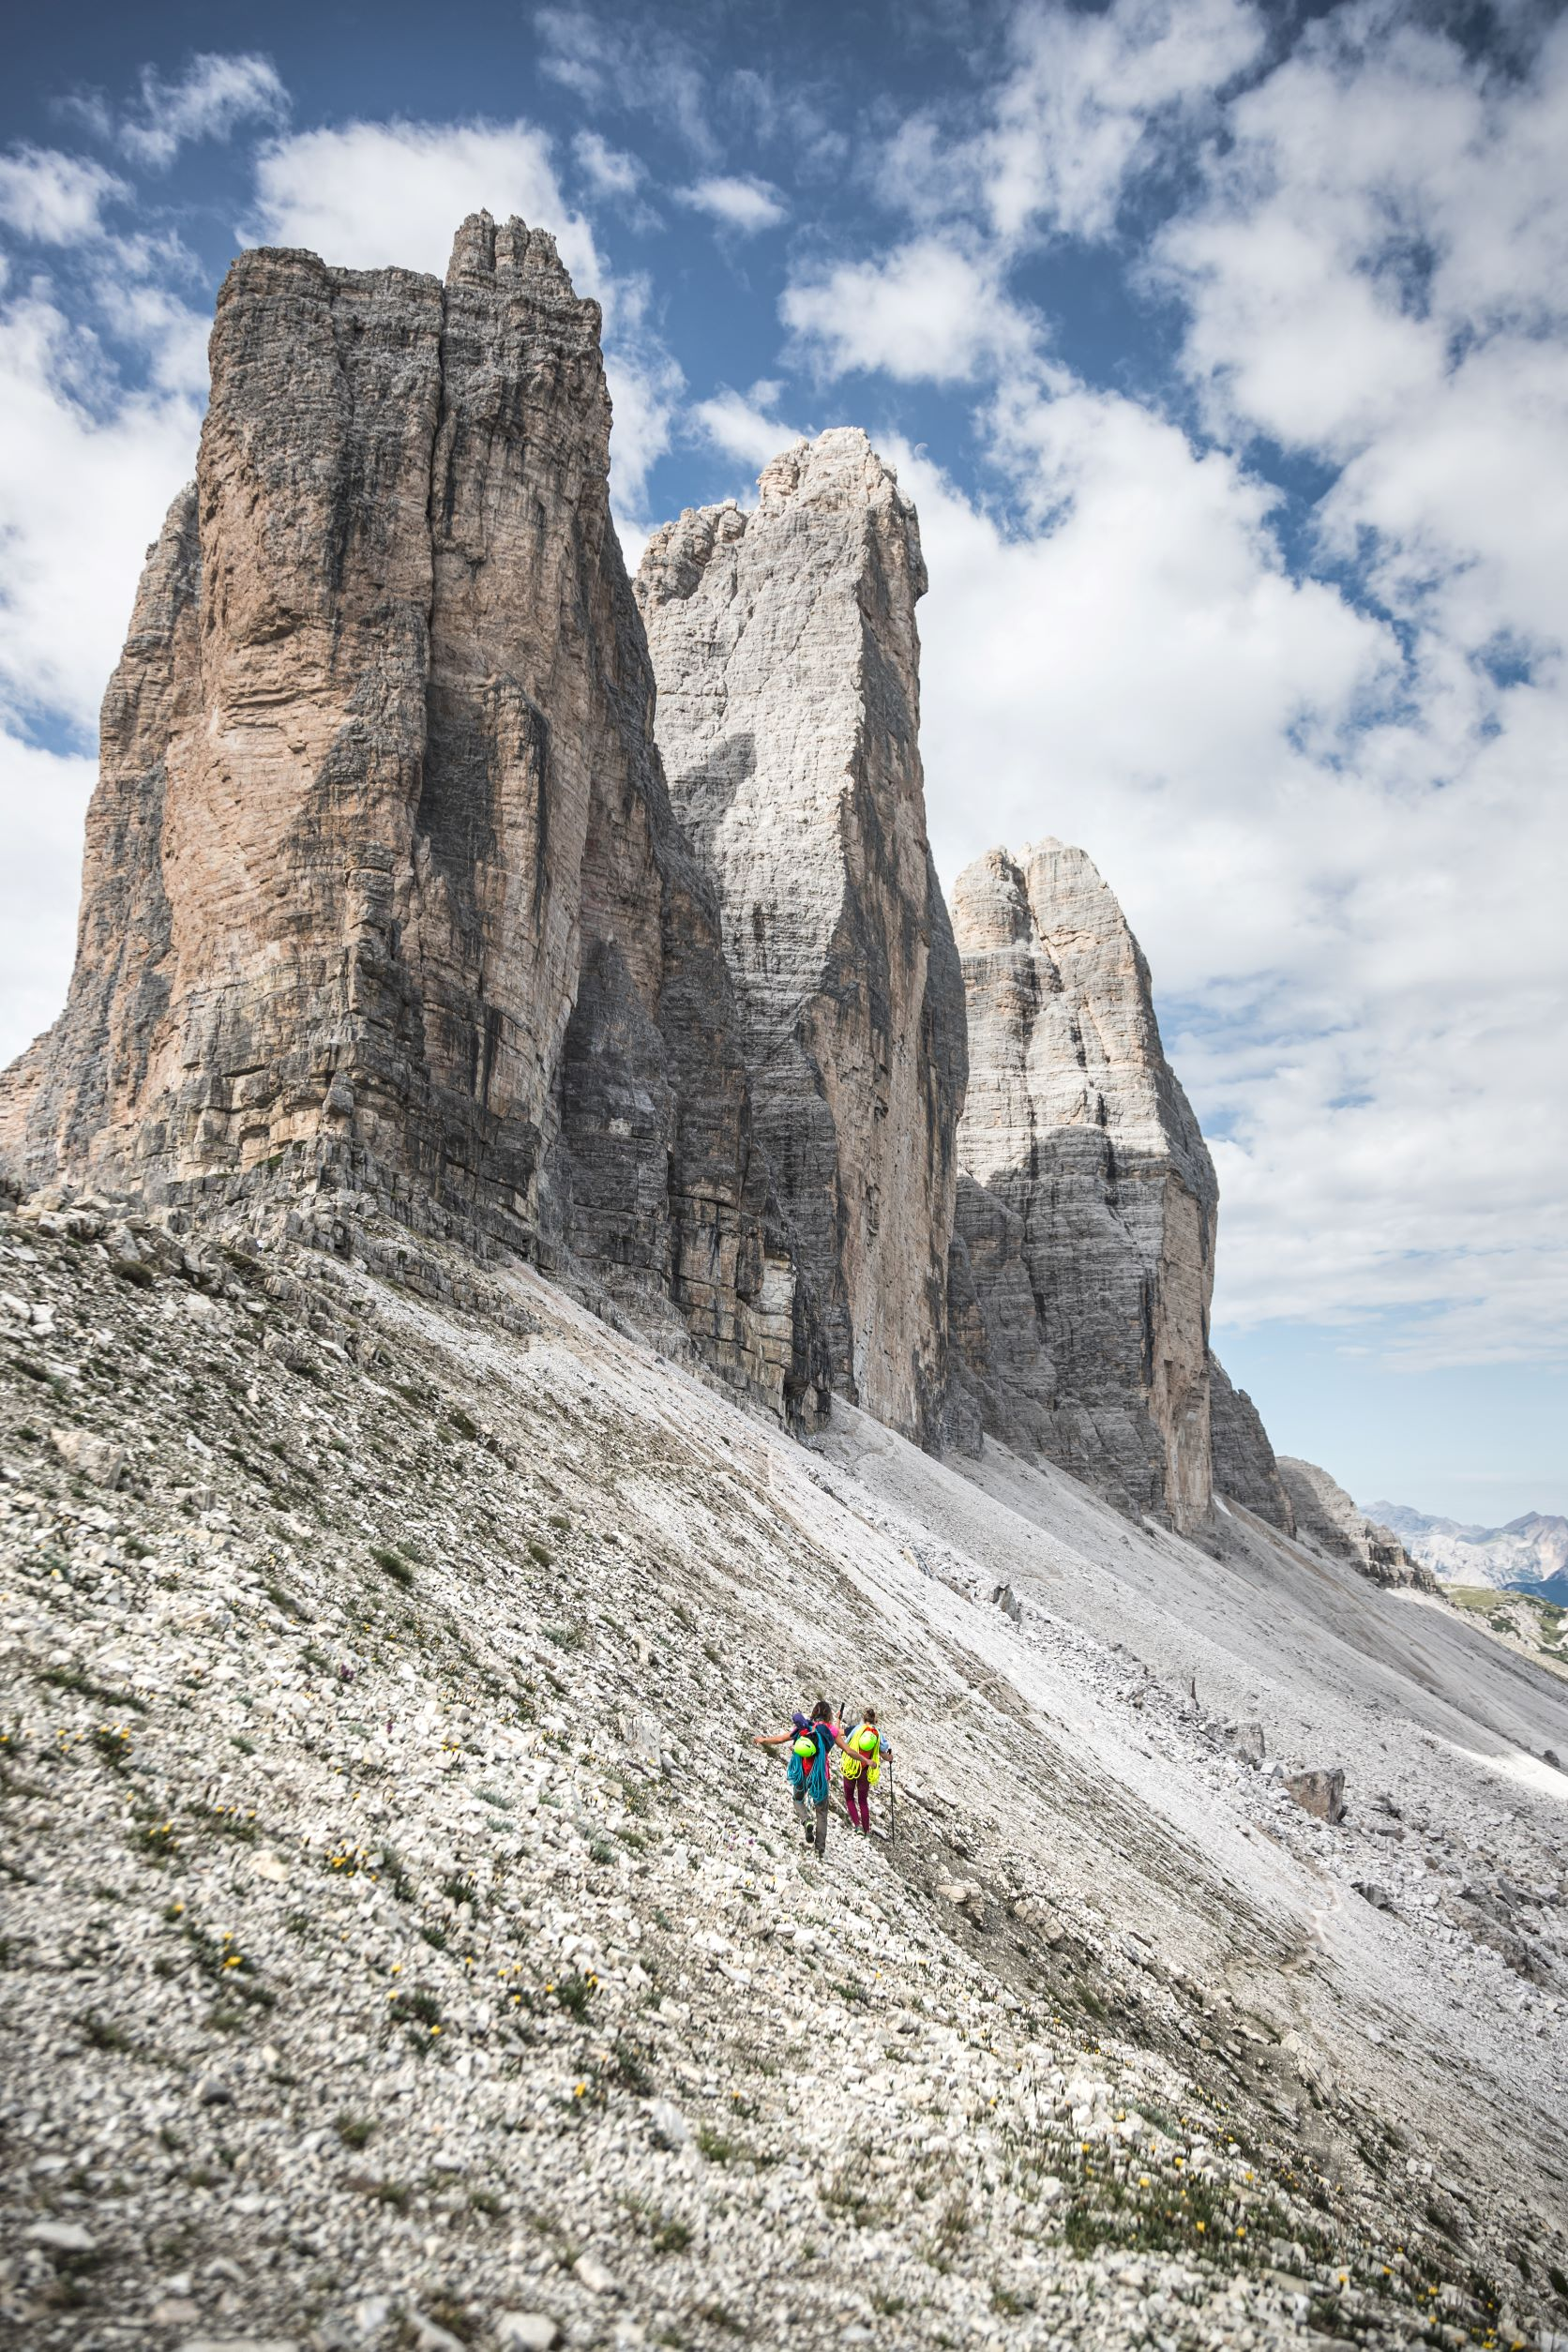 Two climbers hiking up to the Tre Cime di Lavaredo in the Dolomites